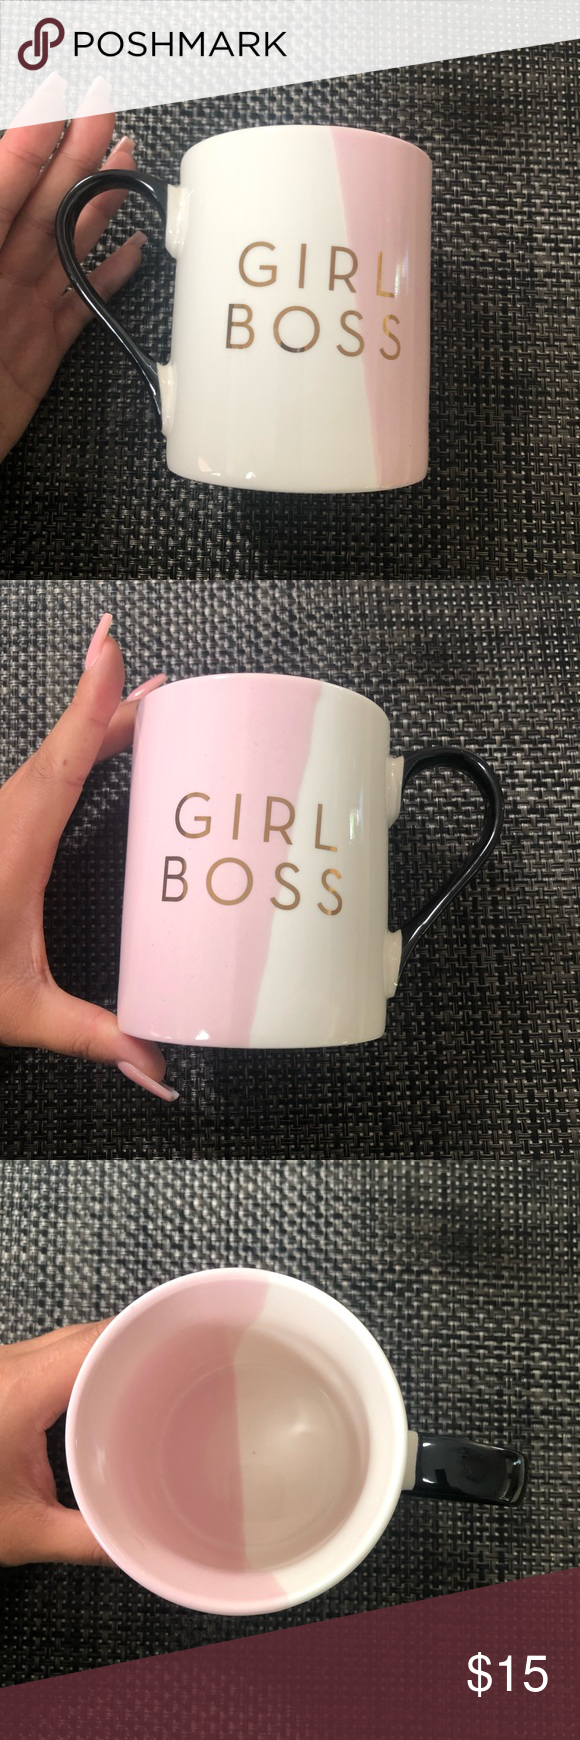 Girl Boss Coffee Mug New | lightweight | be the ultimate girl boss with the mug | hazel & Co. Other #bosscoffee Girl Boss Coffee Mug New | lightweight | be the ultimate girl boss with the mug | hazel & Co. Other #bosscoffee Girl Boss Coffee Mug New | lightweight | be the ultimate girl boss with the mug | hazel & Co. Other #bosscoffee Girl Boss Coffee Mug New | lightweight | be the ultimate girl boss with the mug | hazel & Co. Other #bosscoffee